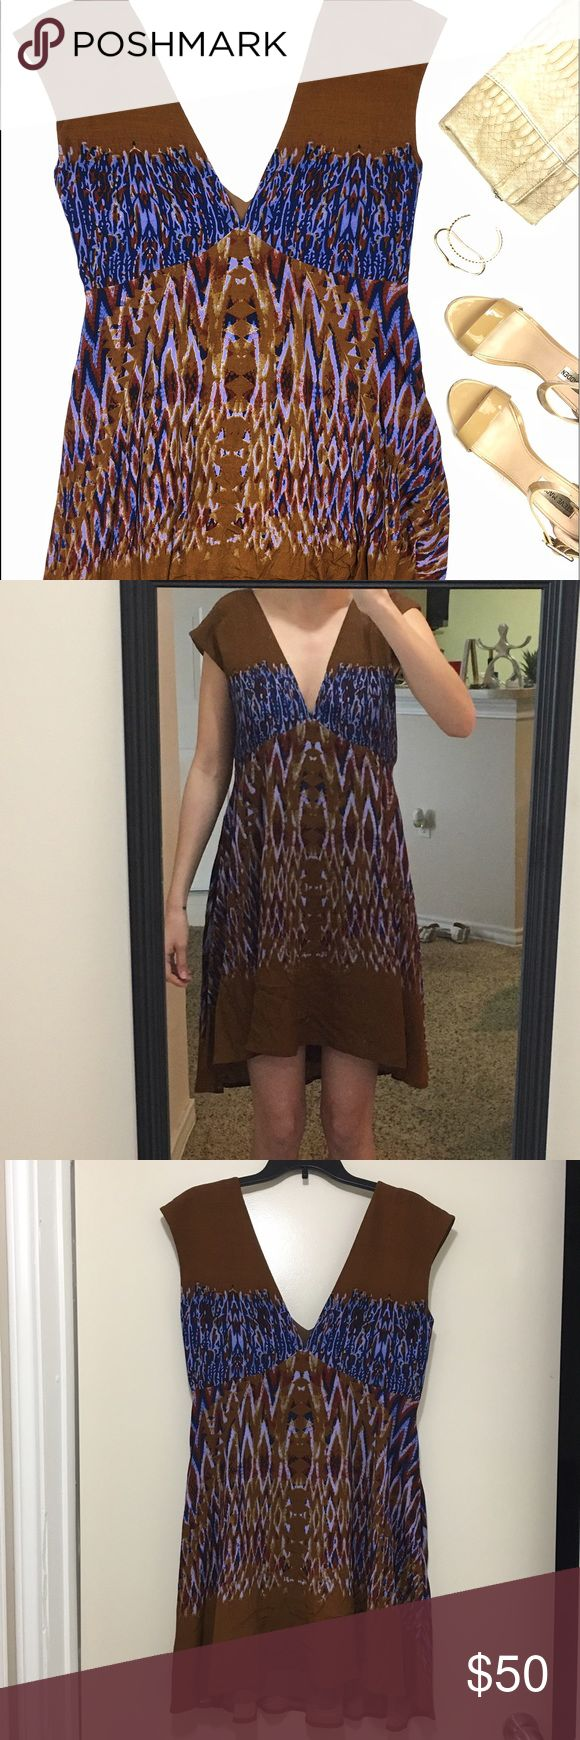 Free People Brown & Blue Ikat Festival Print Dress Stunning dress which can be dressed up or down. Features a v-neck front and back and a hi-lo hem. Can also fit a Medium. Fully lined. 50% viscose, 50% rayon. Free People Dresses Mini